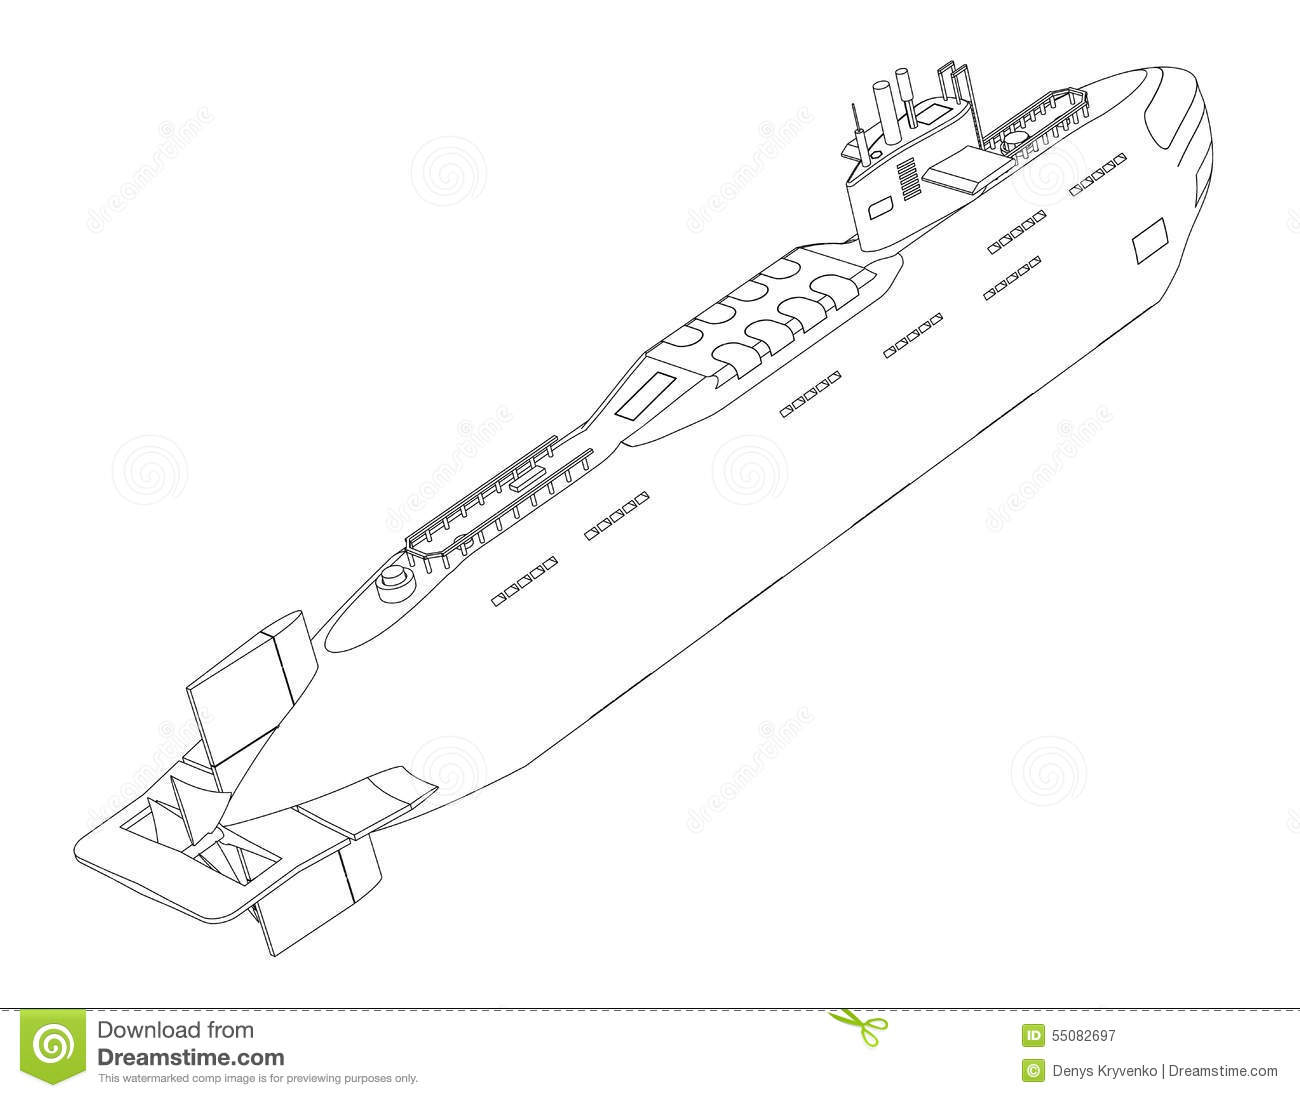 The Submarine Nuclear Outline Drawing On A White